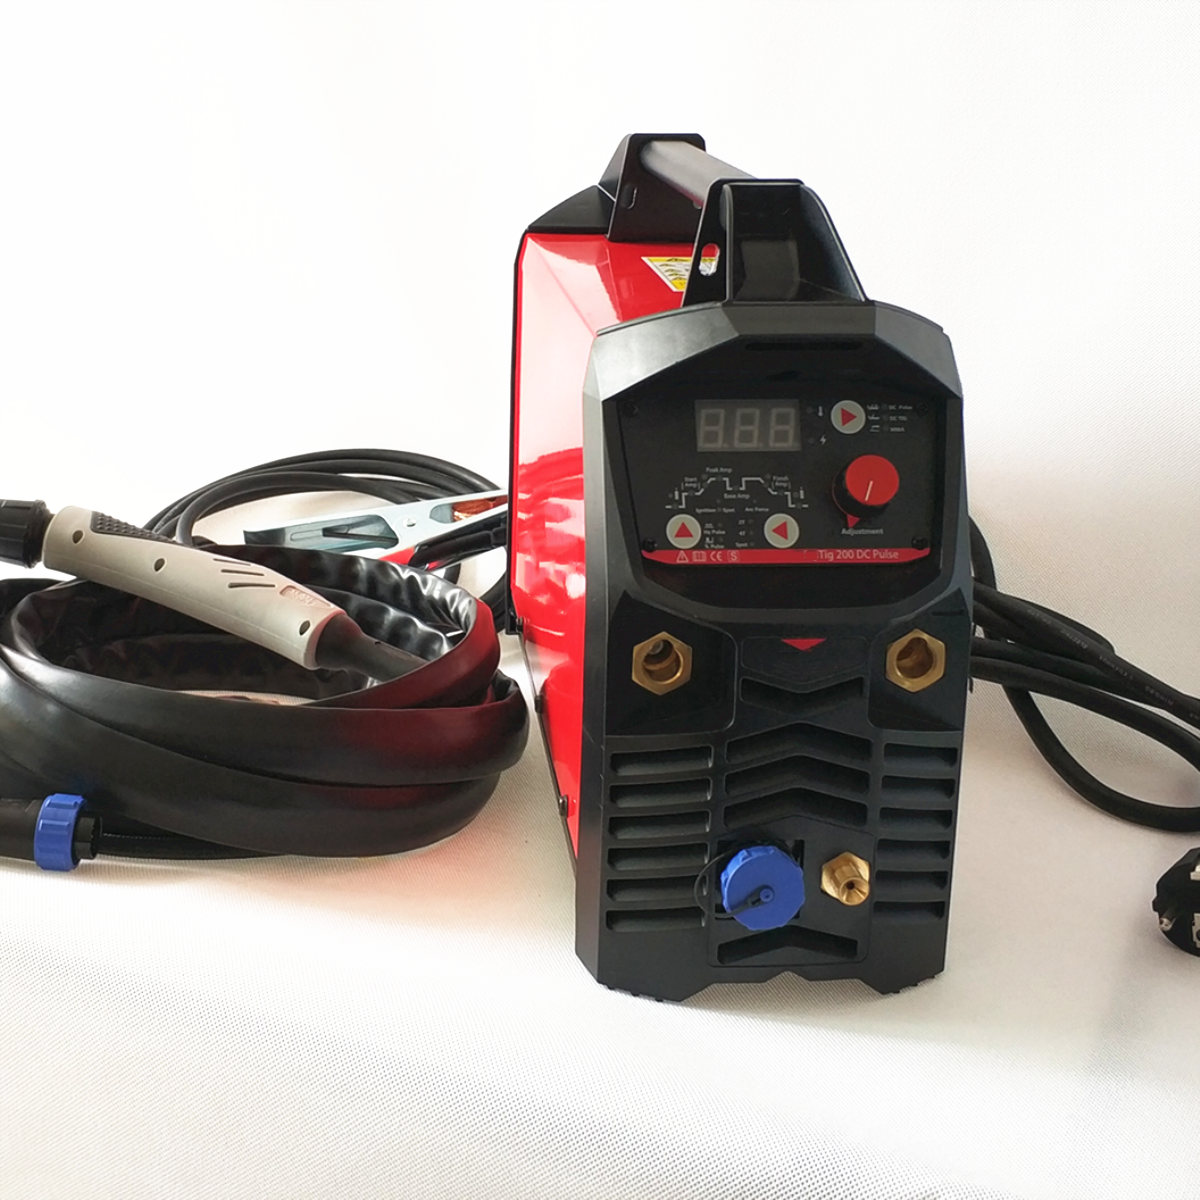 Professional 200A Digital DC Pulse TIG Welding Machine DC Pulse TIG/MMA CE Approved IGBT Inverter TIG Welding Products